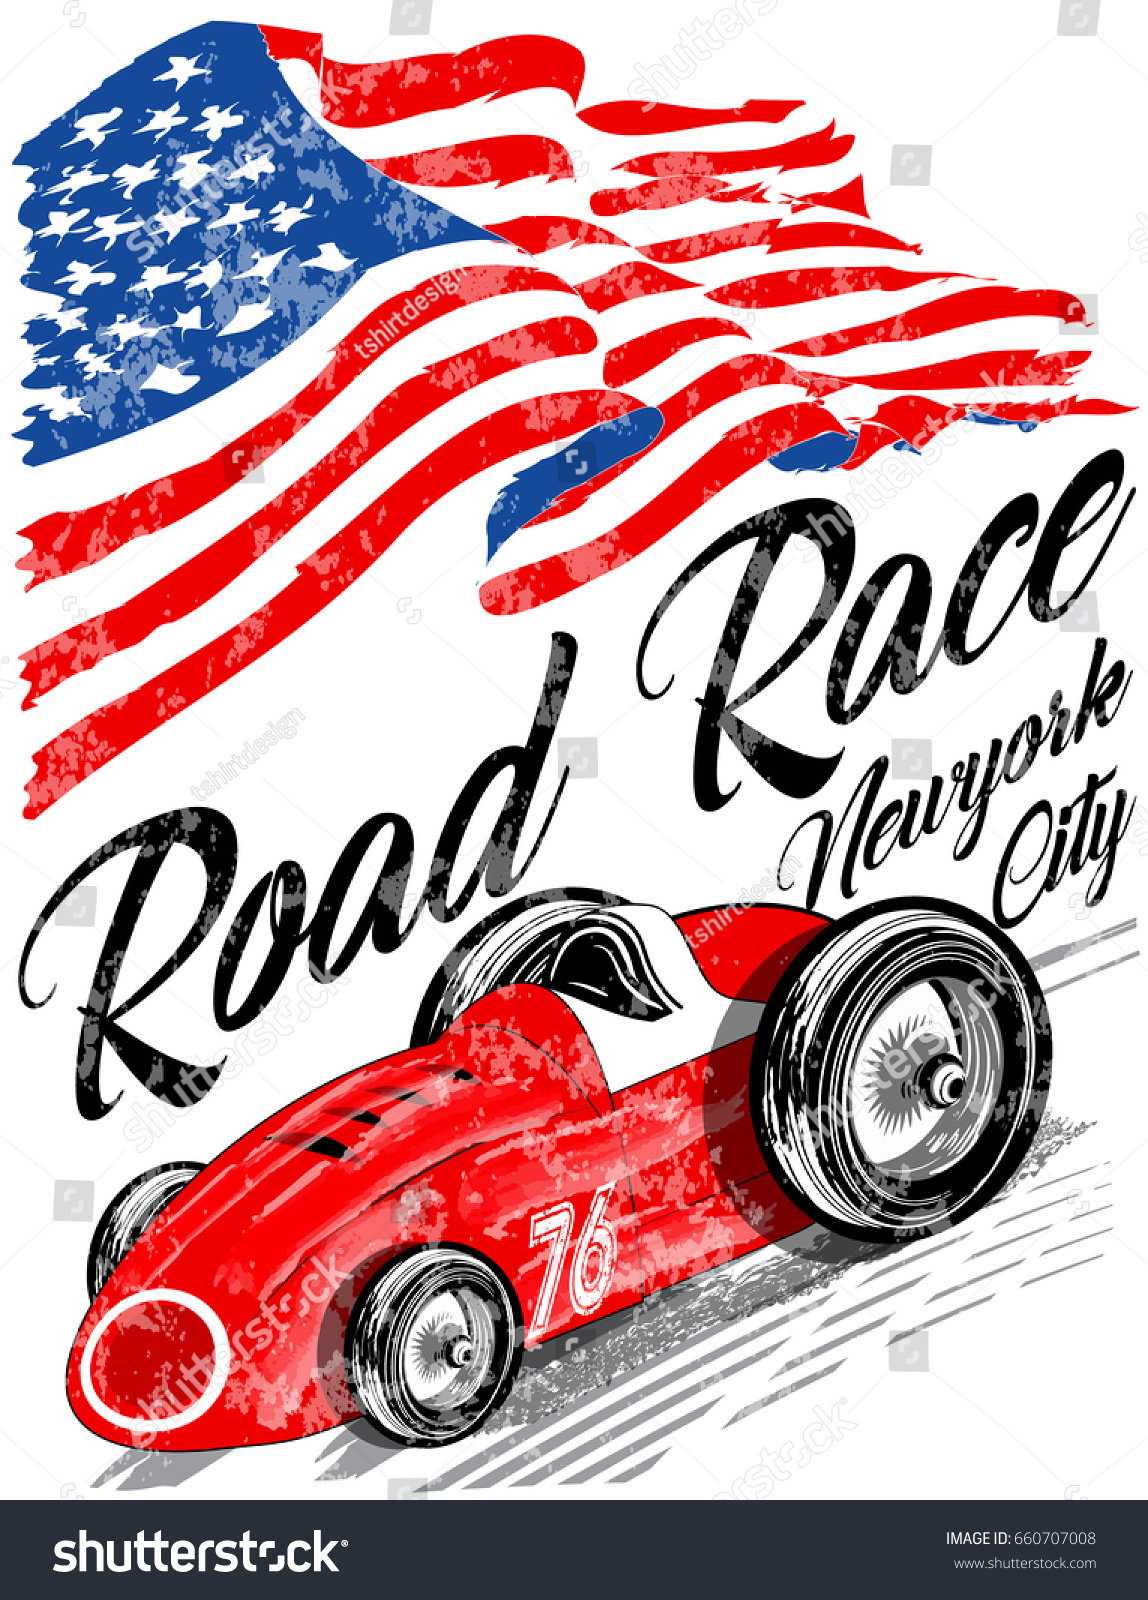 Vintage Race Car Printing Vector Old Stock Vector 660707008 ...